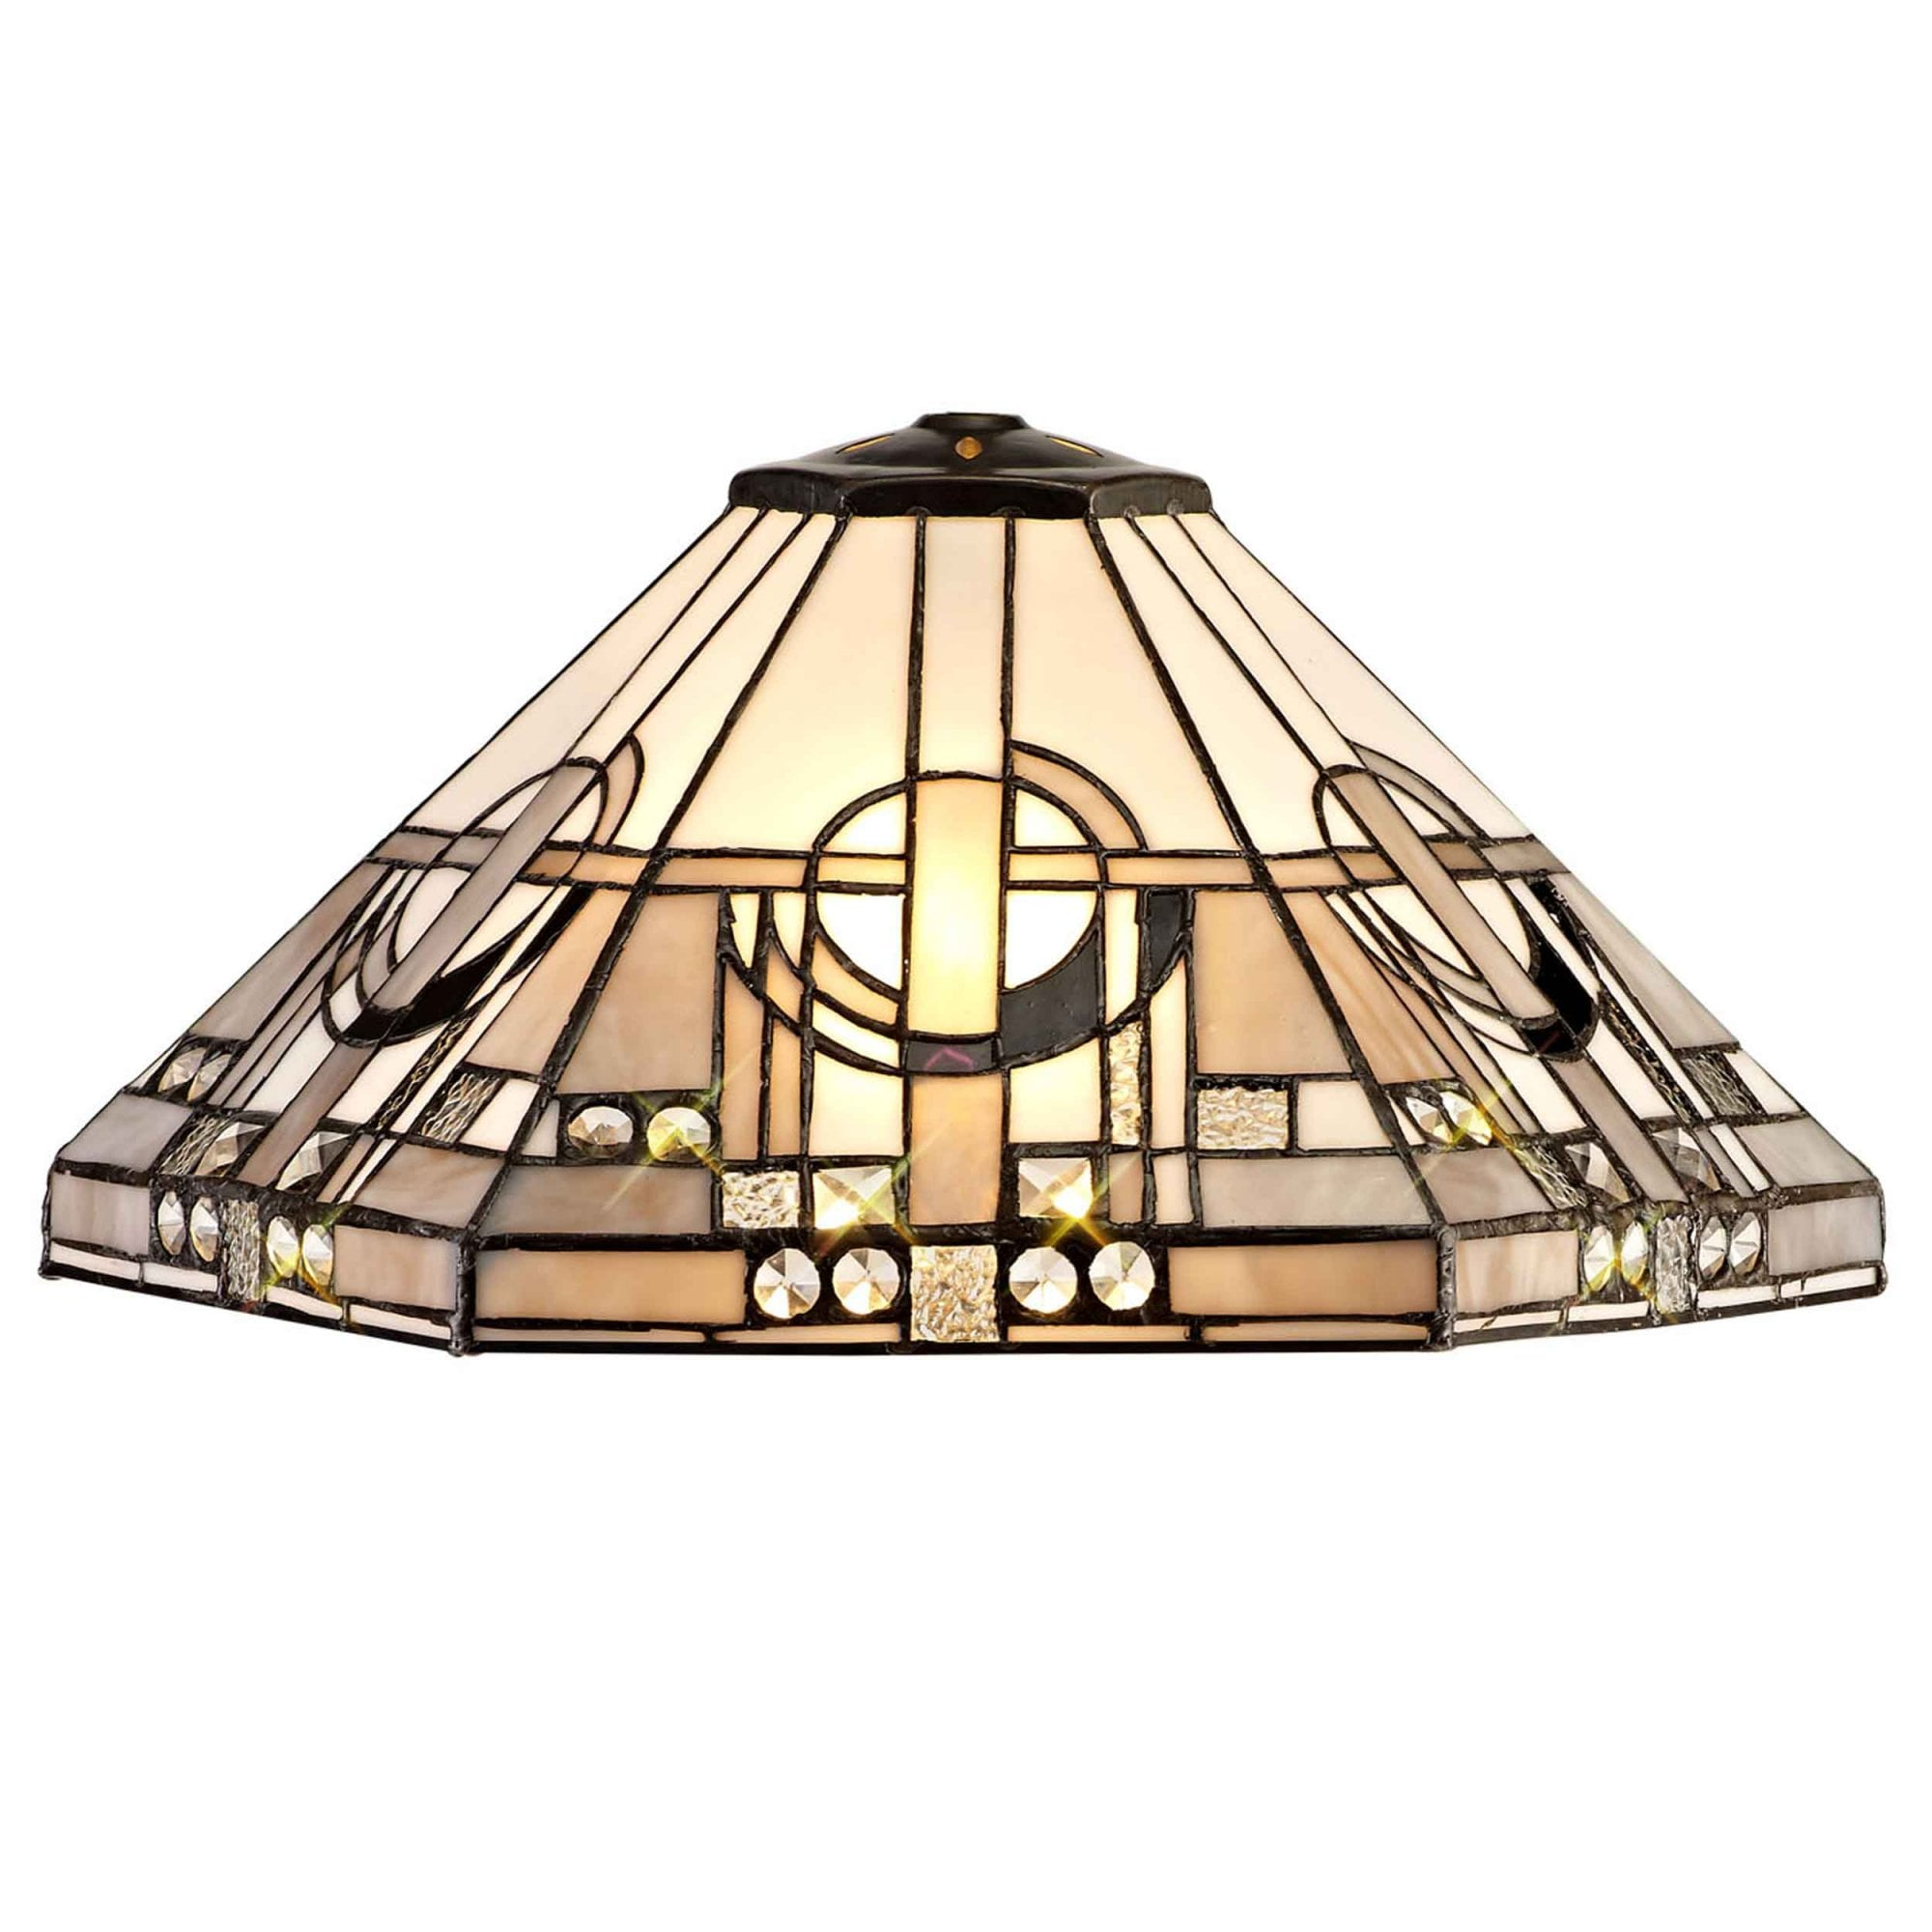 Dusk Collection Jacobstowe Tiffany 40cm Shade Only Suitable For Pendant Ceiling Table Lamp White Grey Black Clear Crystal Fitting Style From Dusk Lighting Uk